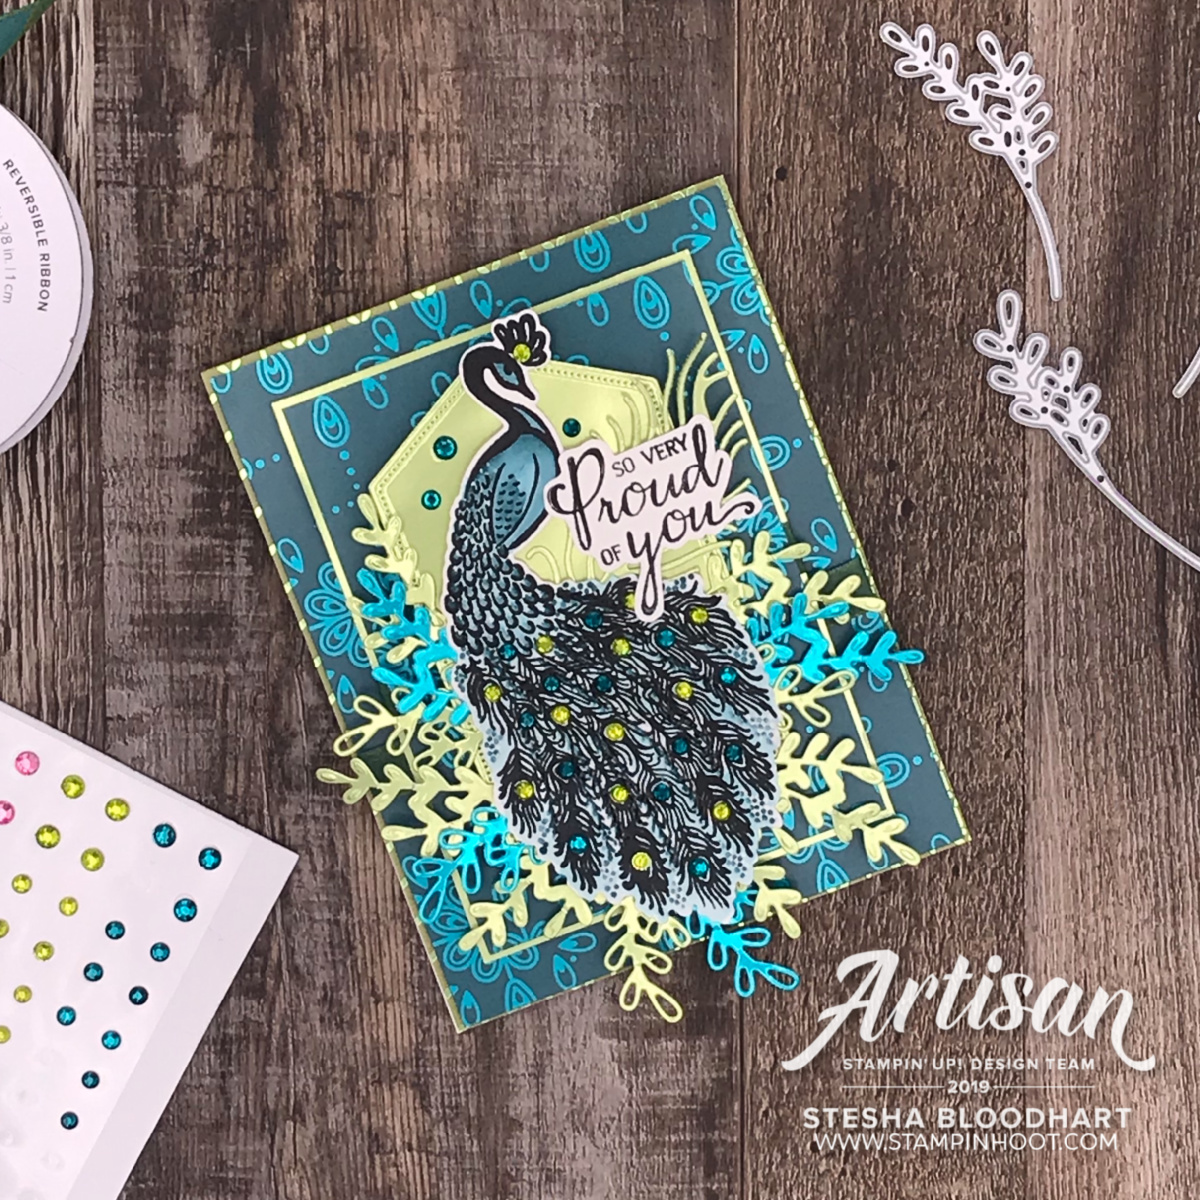 Noble Peacock Suite of Products by Stampin' Up! Card by 2019 Artisan Stesha Bloodhart, Stampin' Hoot